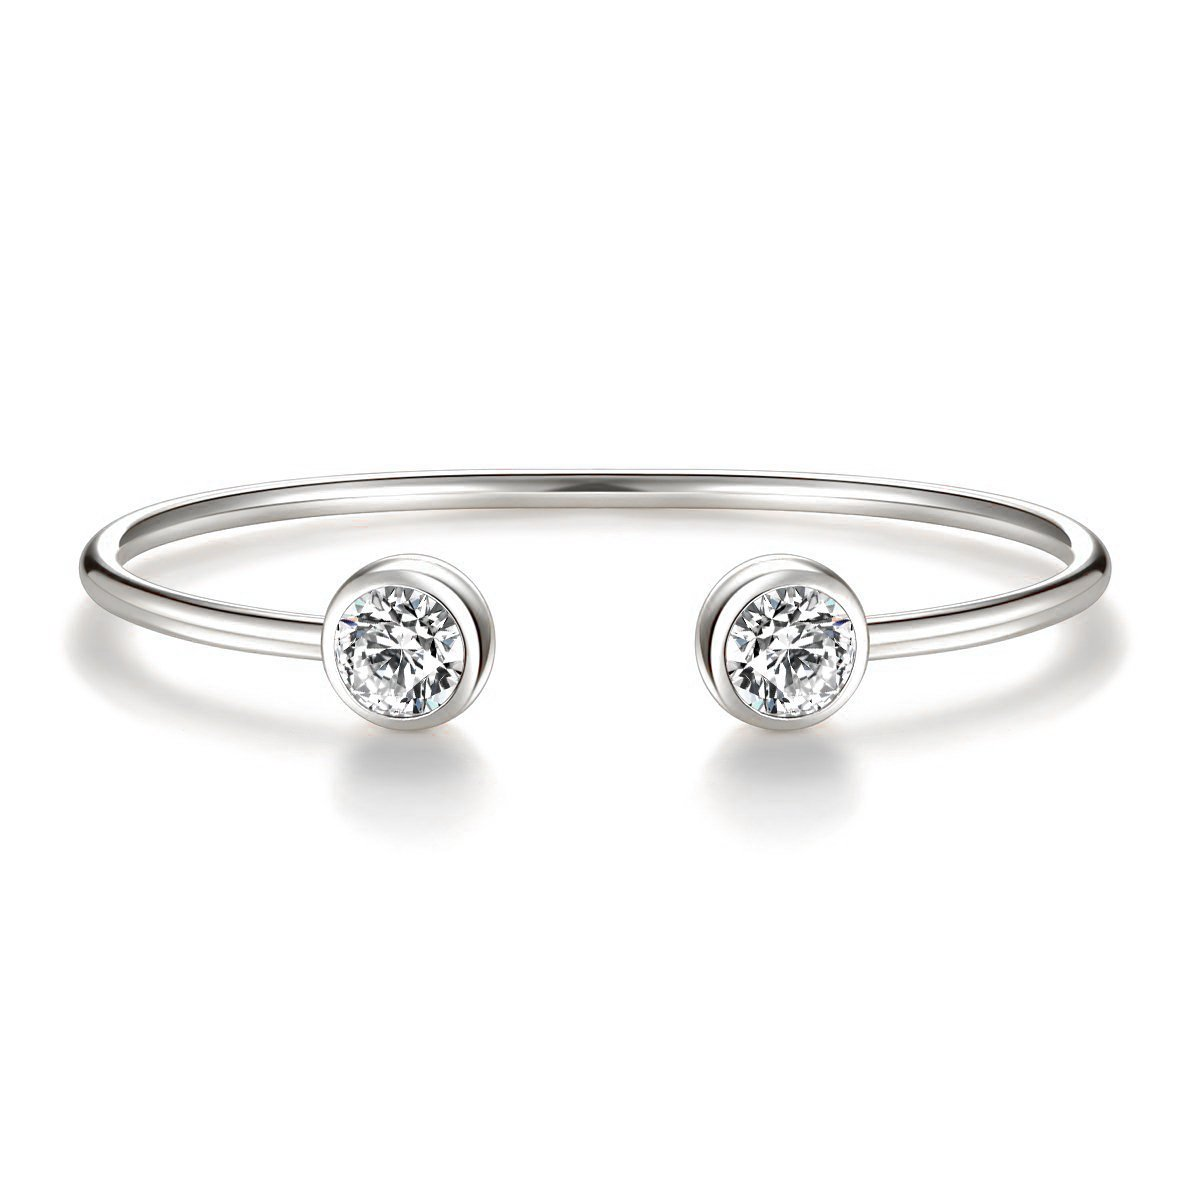 ISAACSONG.DESIGN Rose Gold Silver Tone Cuff Bangle Bracelet Zirconia Crystal Stone Jewelry for Women (white gold)